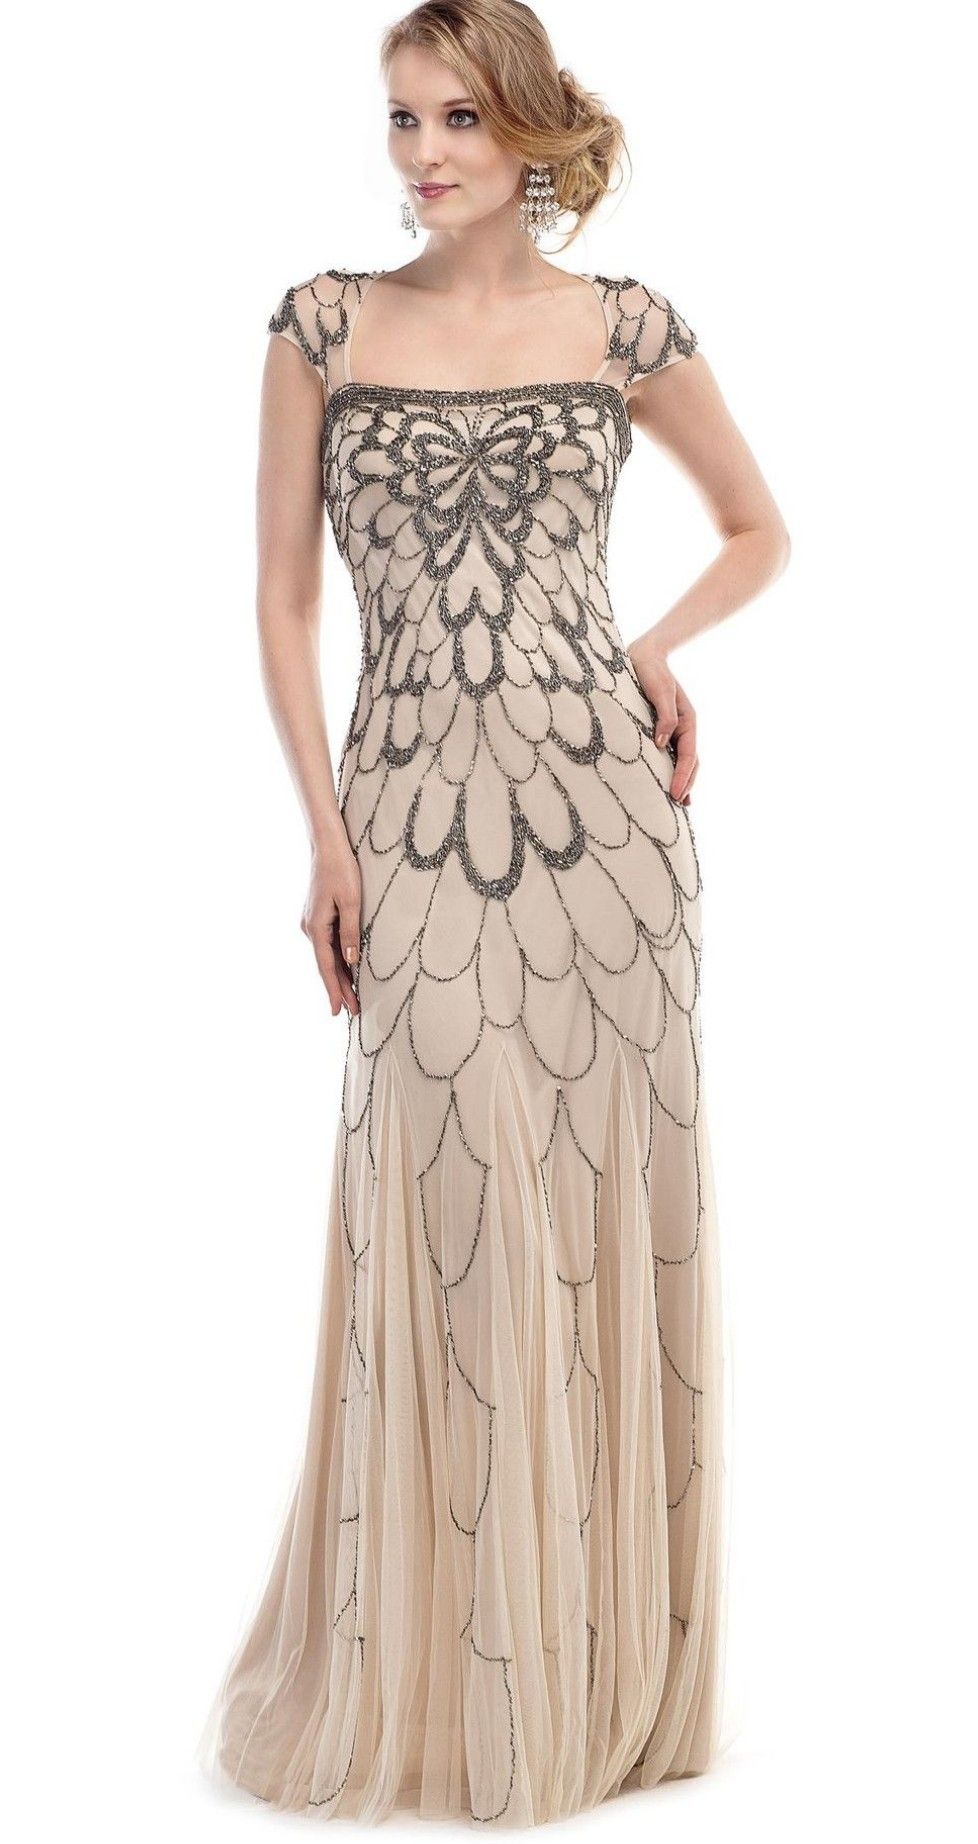 FlapperDress #Gatsby #17s #17s #Charlston #Dresses  17er jahre